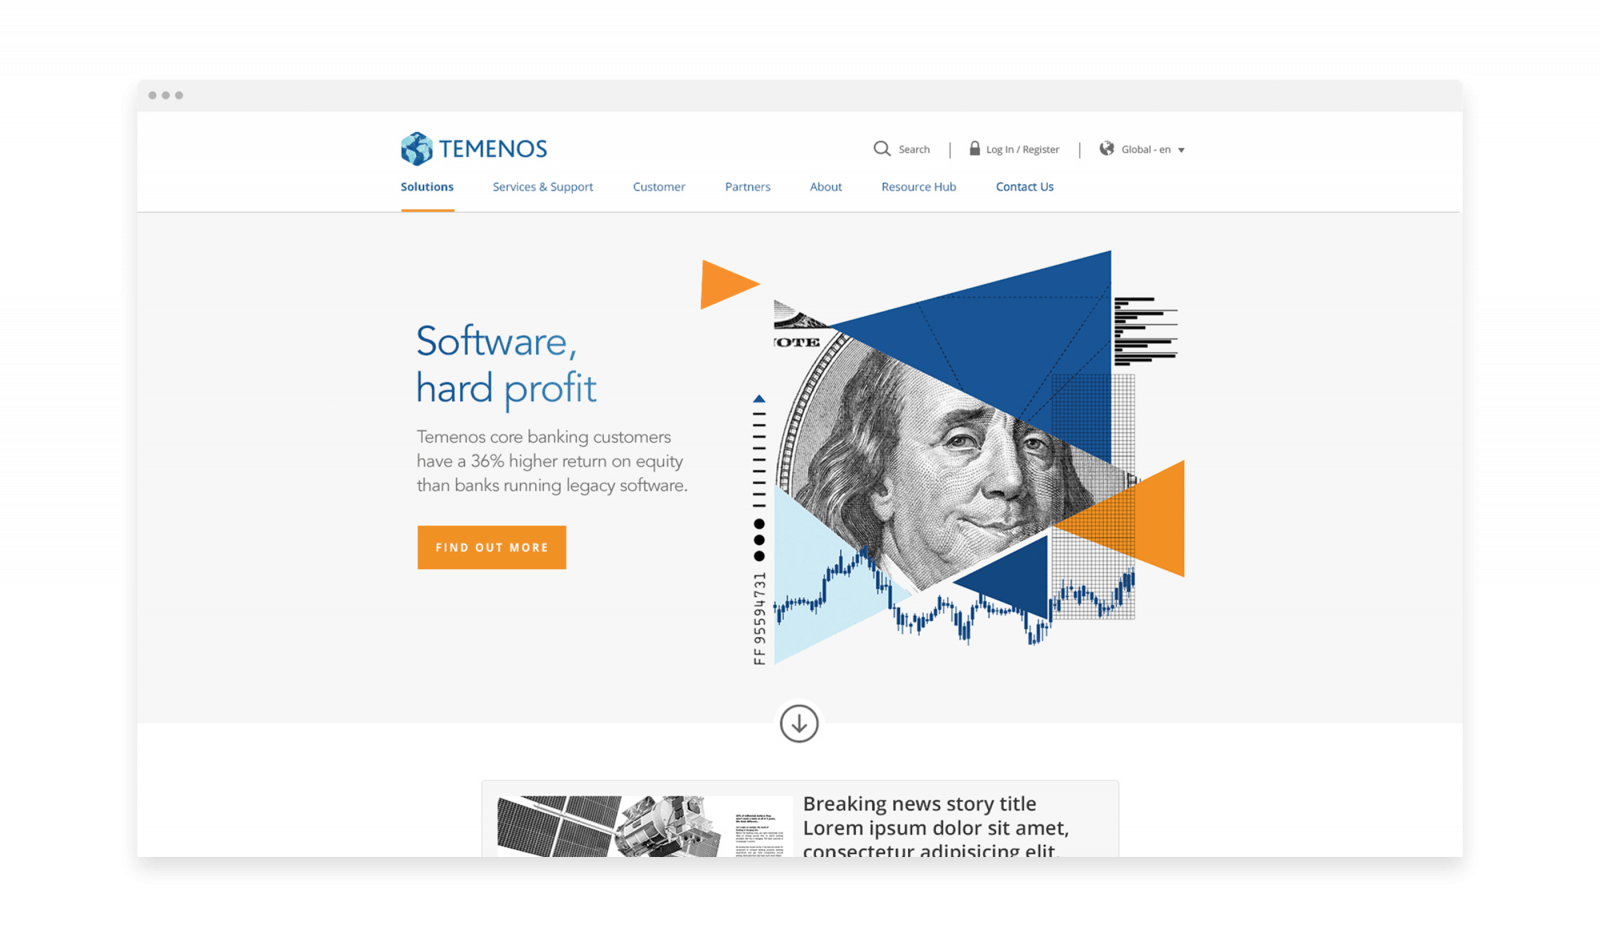 temenosWebsiteBrowser